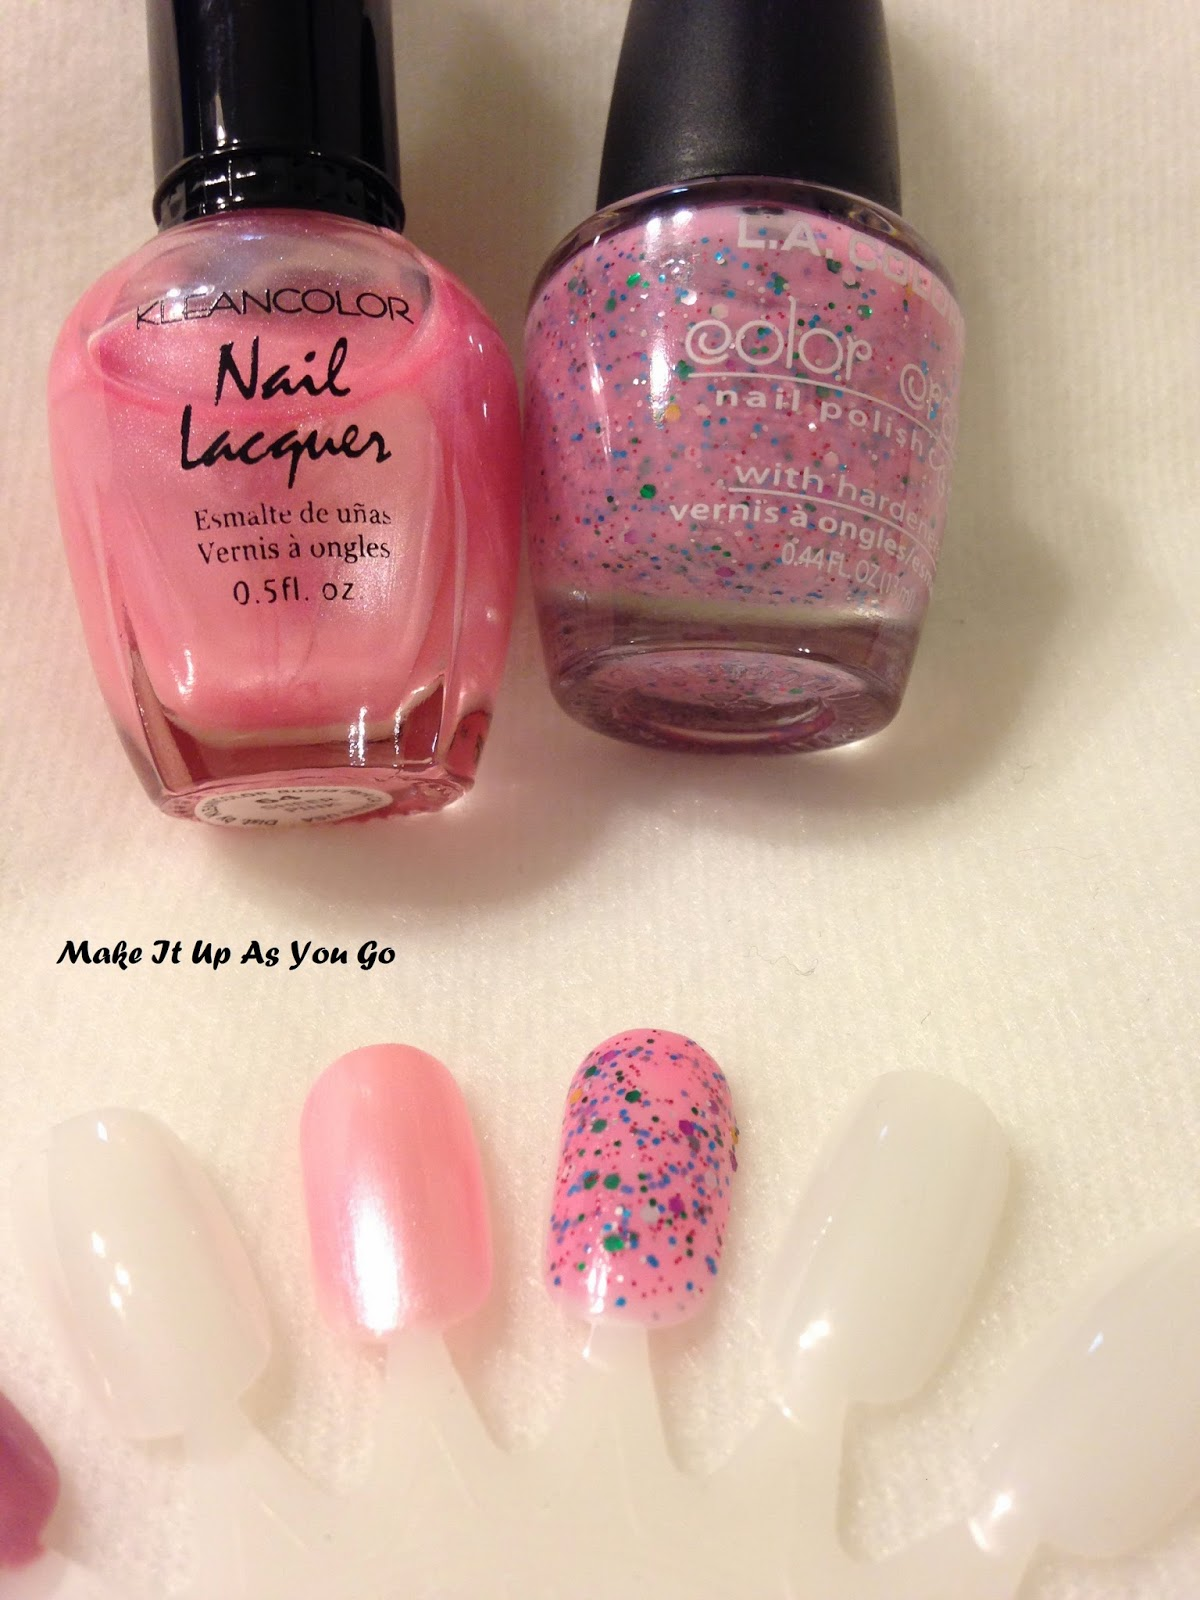 Make It Up As You Go: Nail Polish Change - KleanColor Nail Lacquer ...